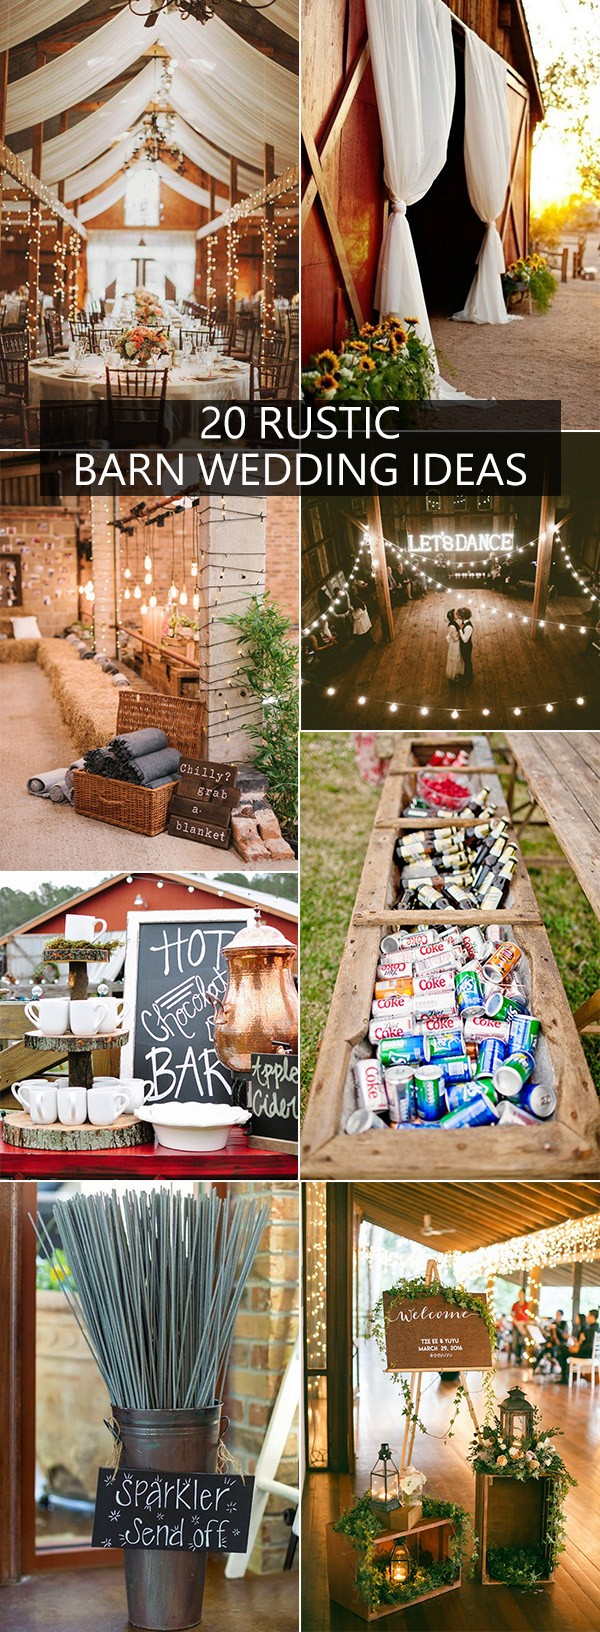 20 rustic barn wedding ideas for 2018